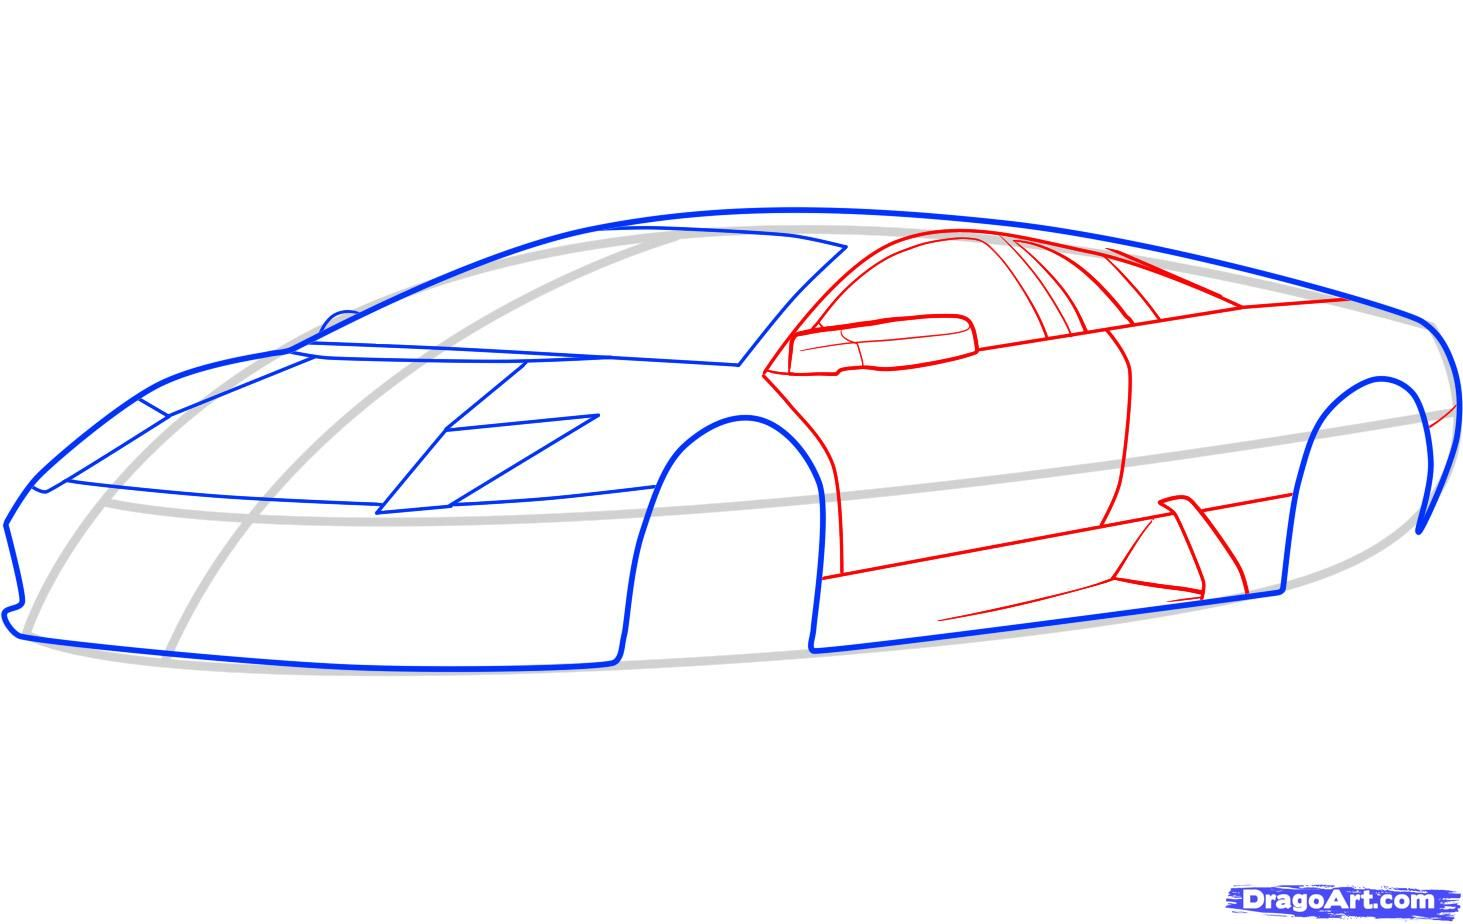 How to draw the Mercedes-Benz car step by step 5